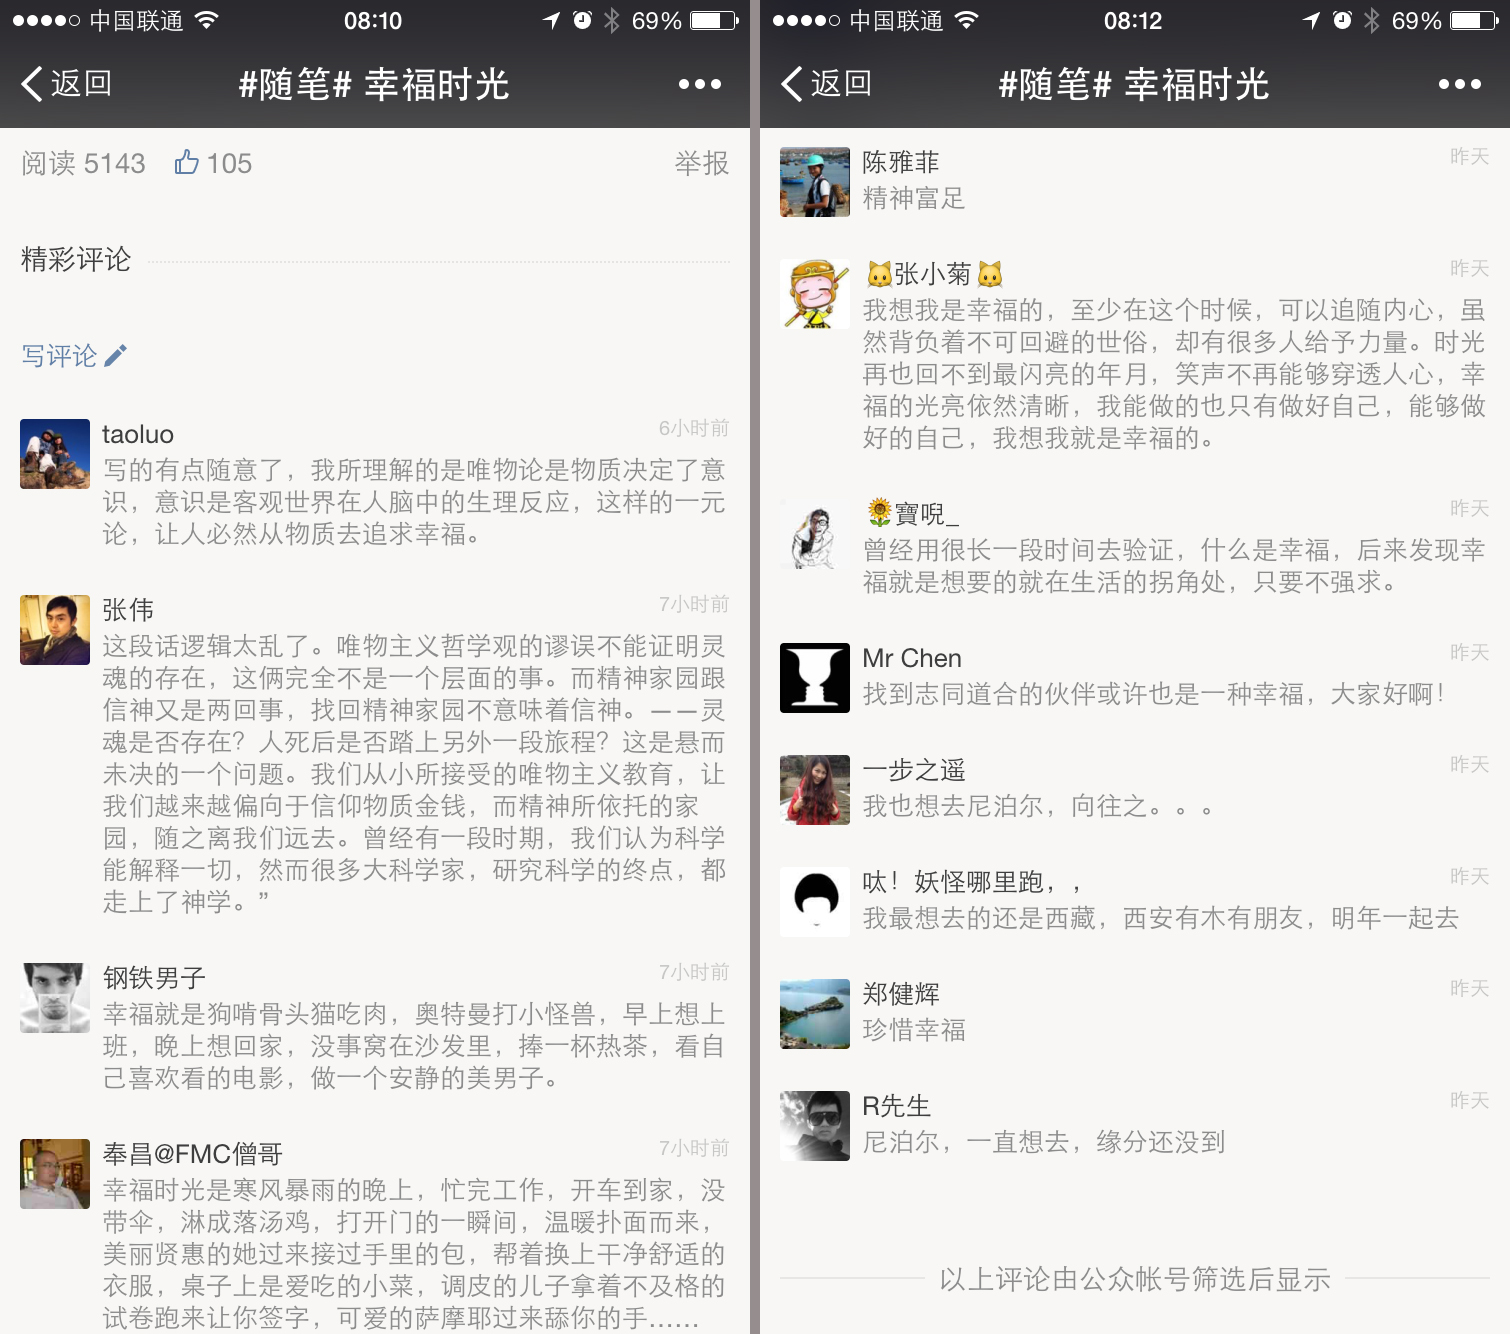 wechat-comment-1